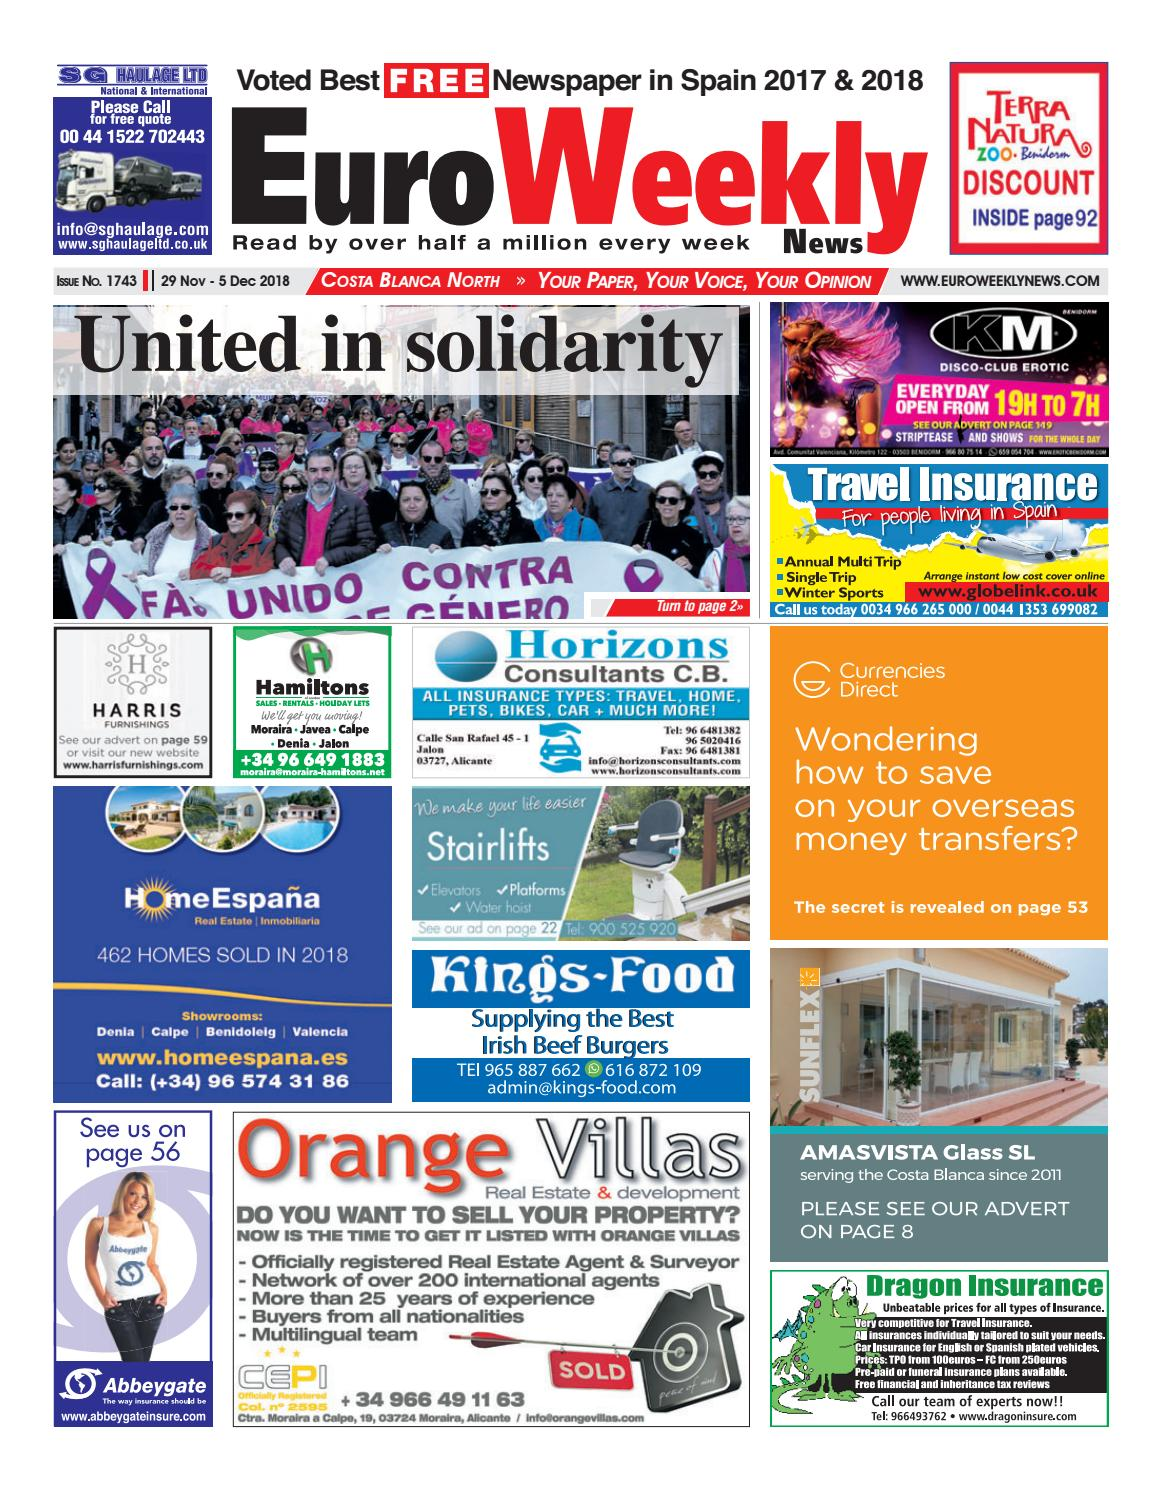 23d53b940c9 Euro Weekly News - Costa Blanca North November 29 - 5 December 2018 Issue  1743 by Euro Weekly News Media S.A. - issuu